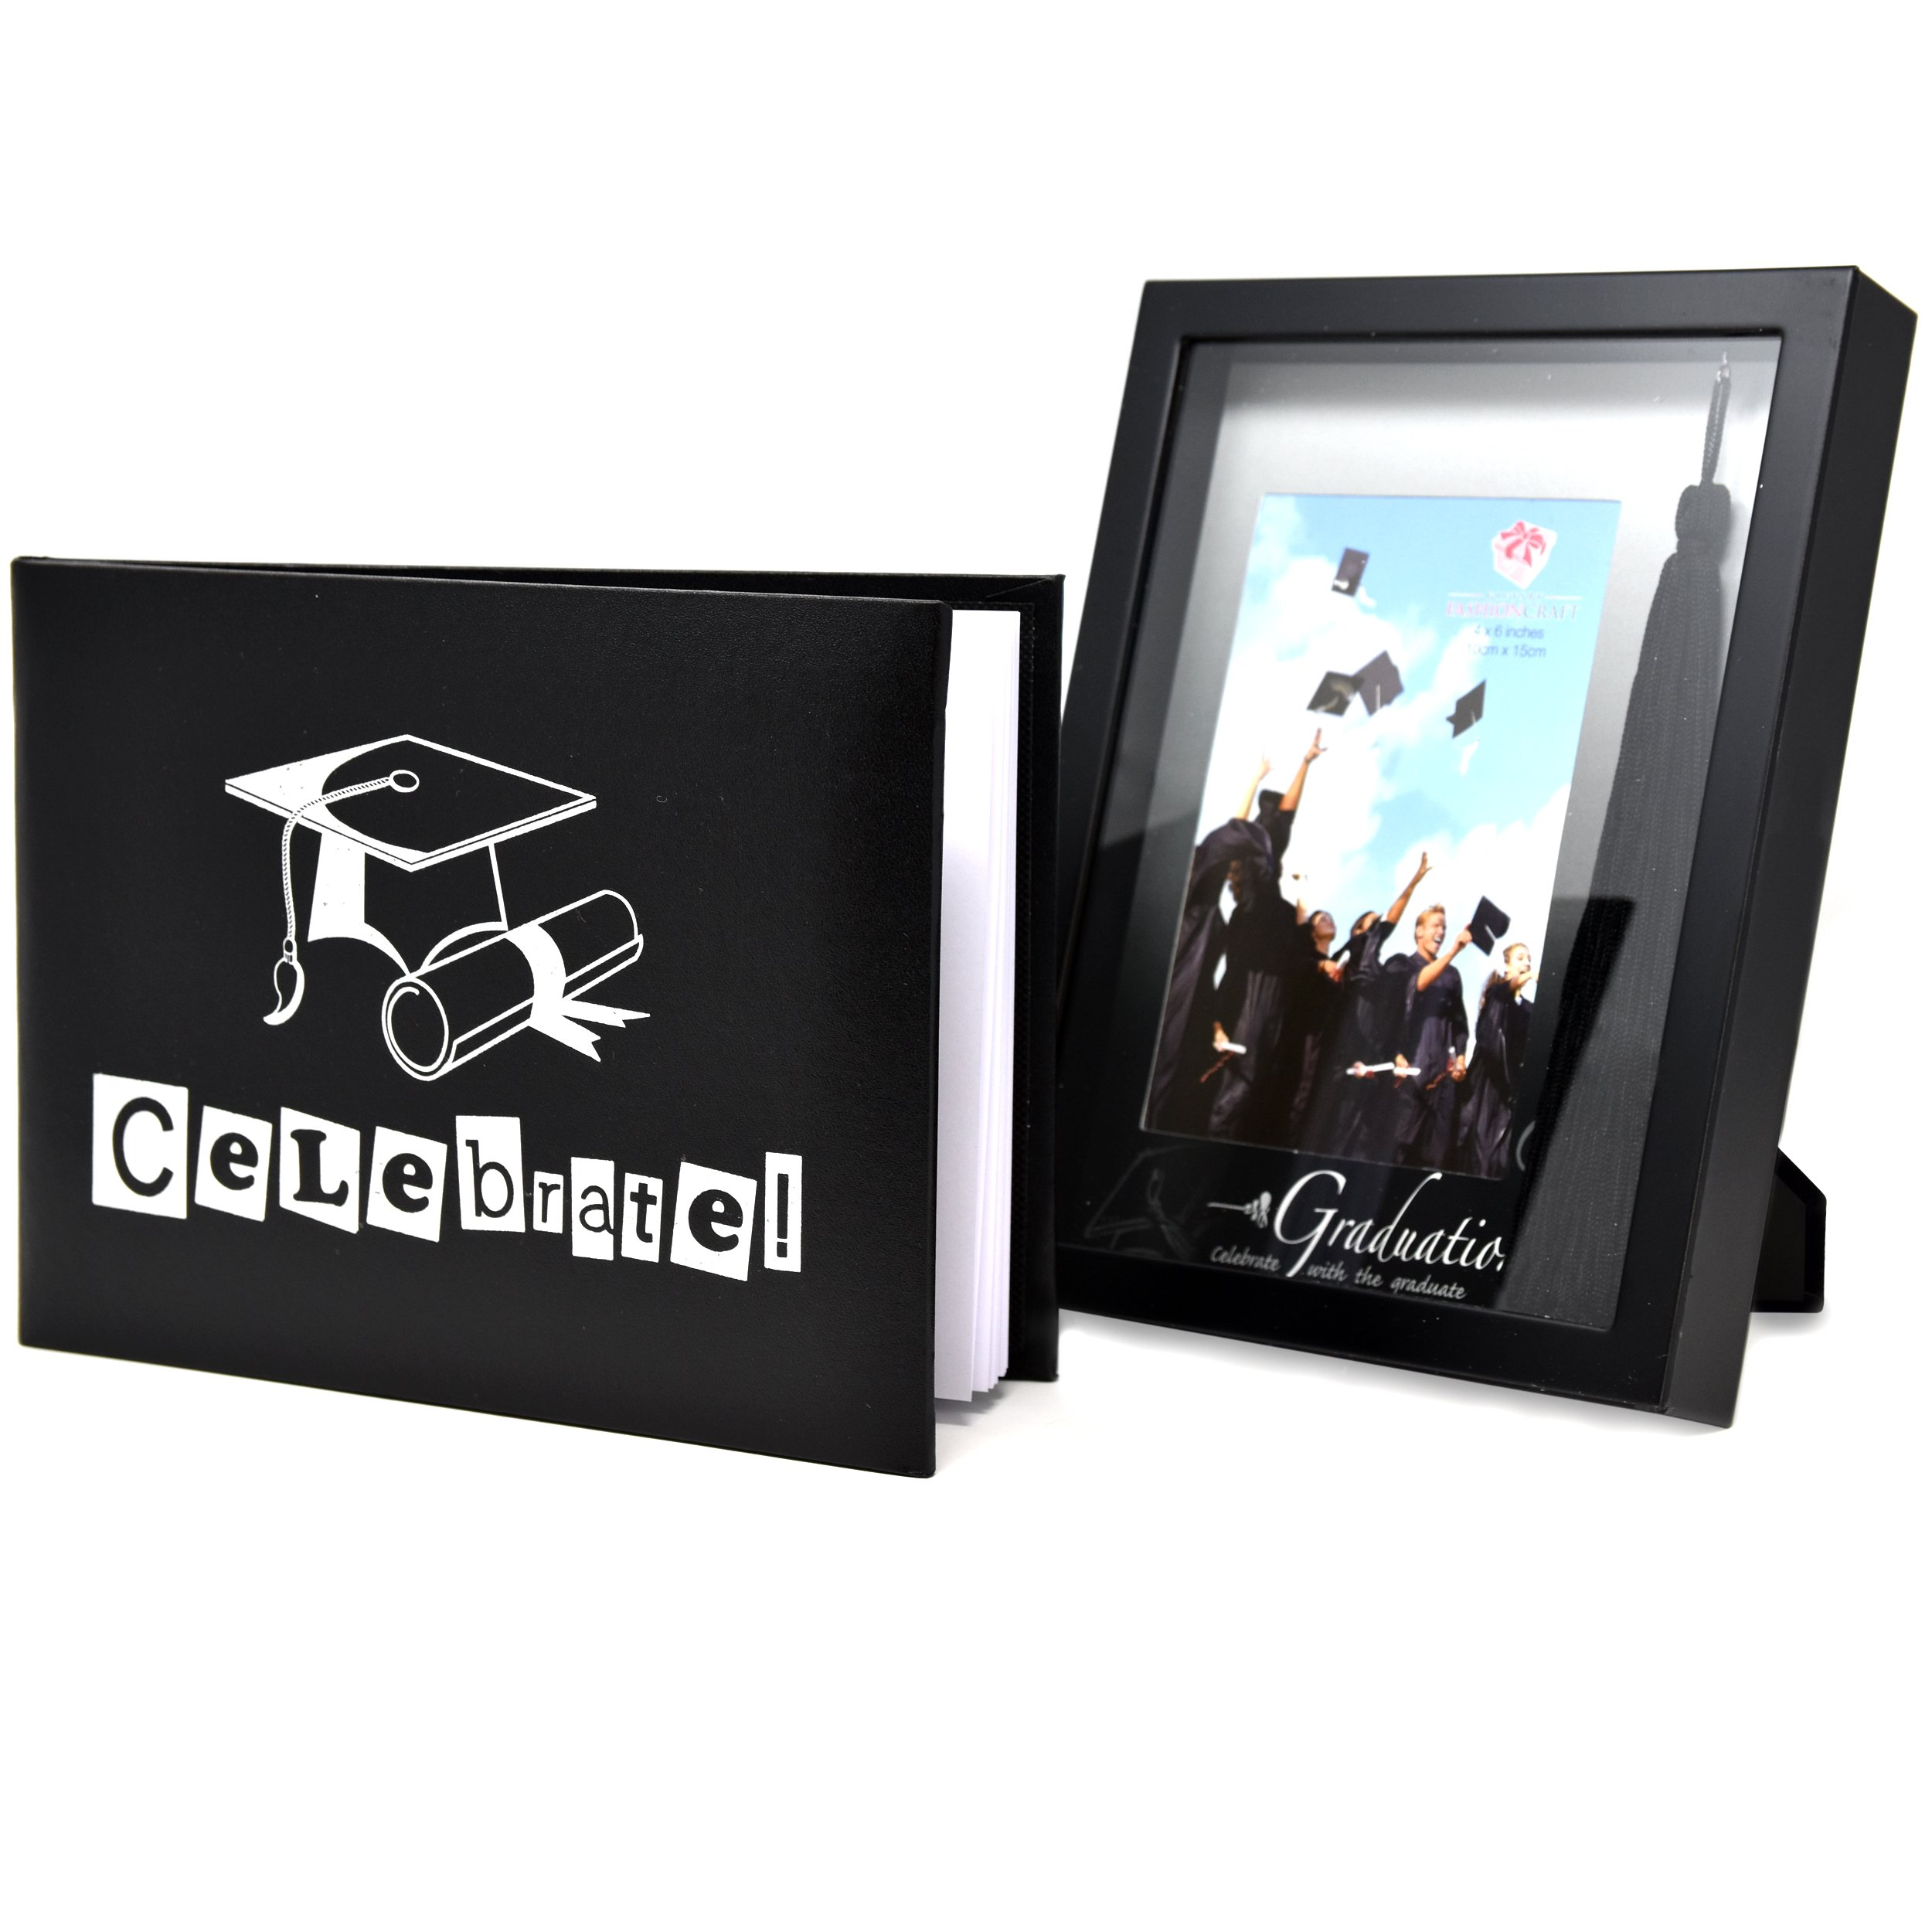 Graduation 2018 Gifts 4x6 Picture Photo Frame with Tassel Holder and Black Autograph Book Keepsake Elegant Personal Memories Grad Gift for Adults Women Men Teens Kids Children Girls Boys Students